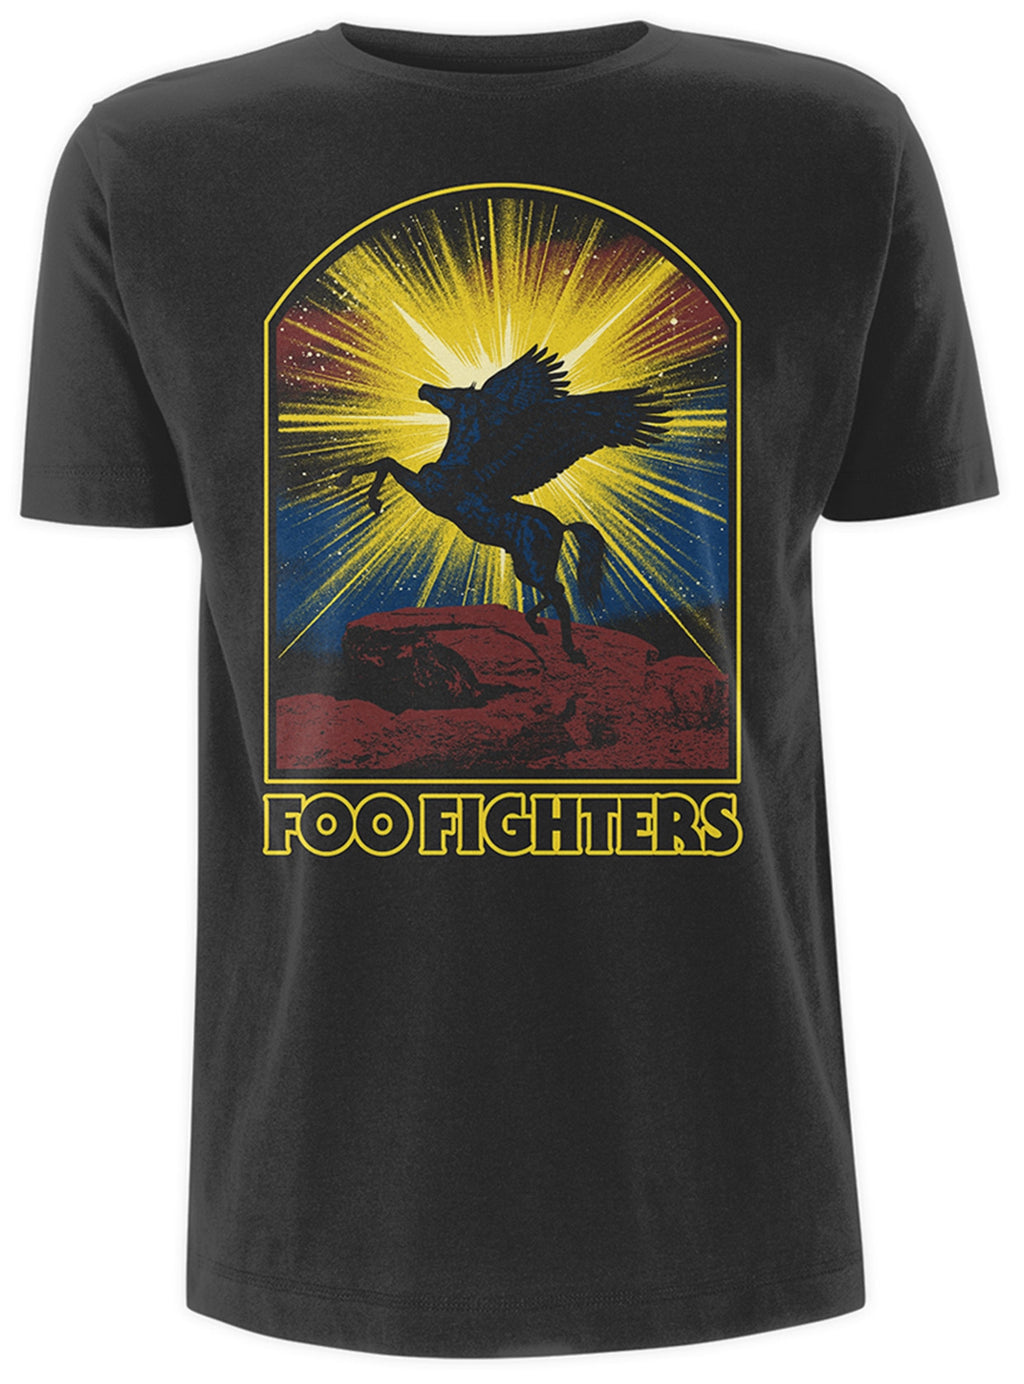 Foo Fighters Winged Horse Men's T-Shirt